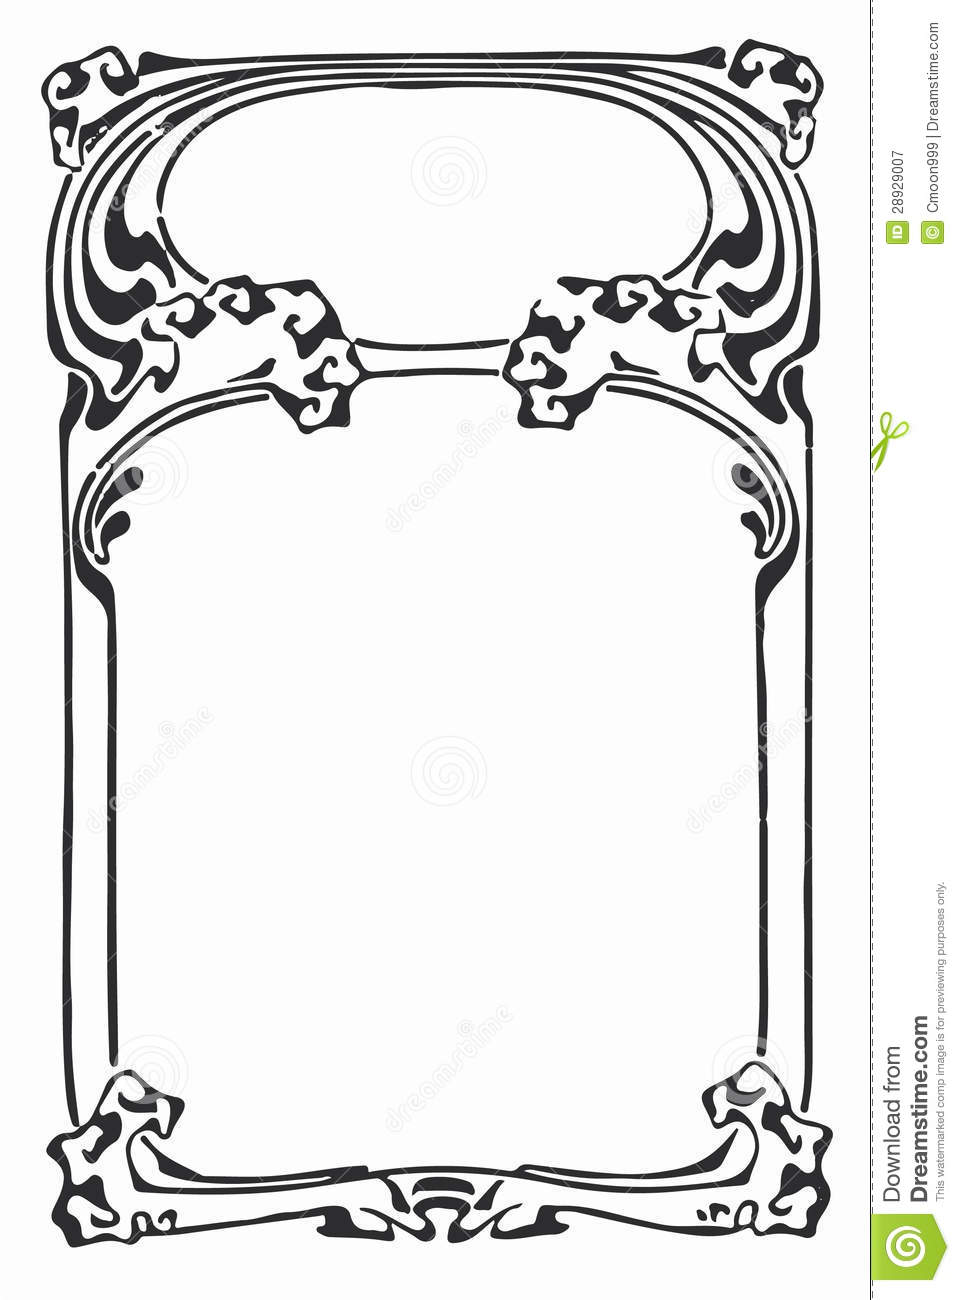 Line Art Border Design : Vintage art nouveau line scrapbook border stock